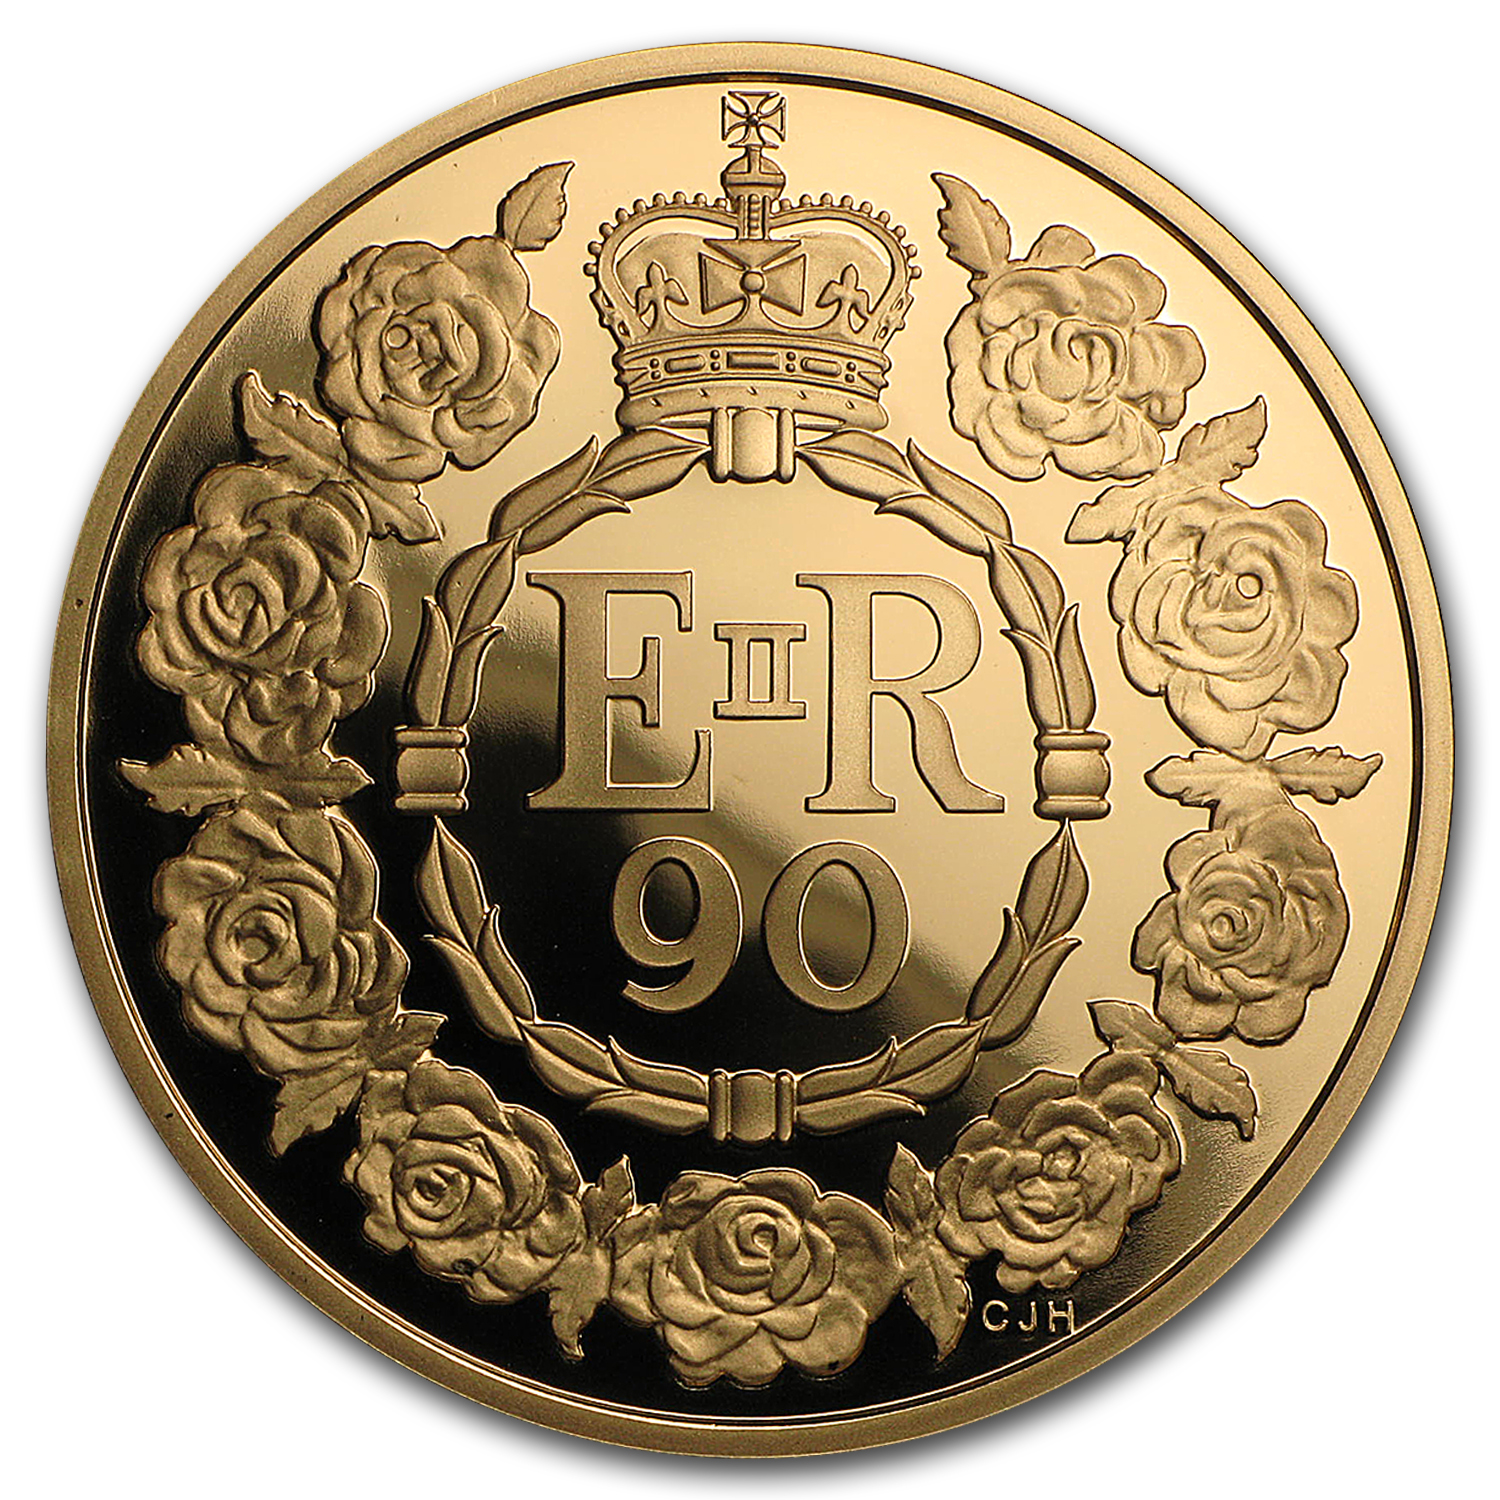 2016 Great Britain £5 Prf Gold Queen's 90th Birthday